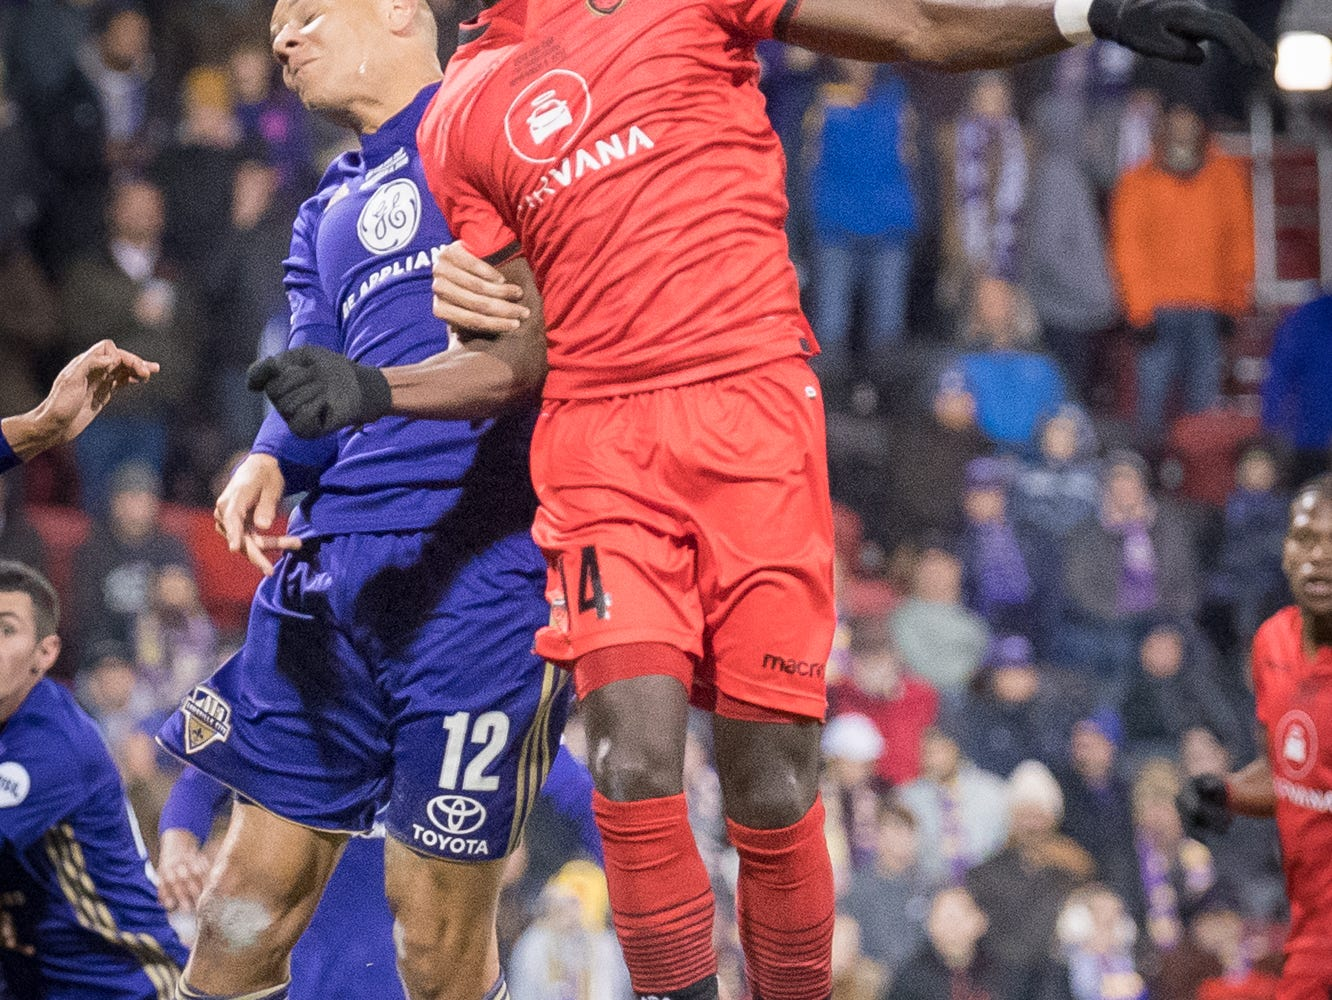 Louisville City FC forward Luke Spencer (12) collides with Phoenix Rising FC forward Jason Johnson (14) during the USL Cup final played at Lynn Stadium on the campus of the University of Louisville, Louisville, Ky., Thursday, Nov., 8, 2018.